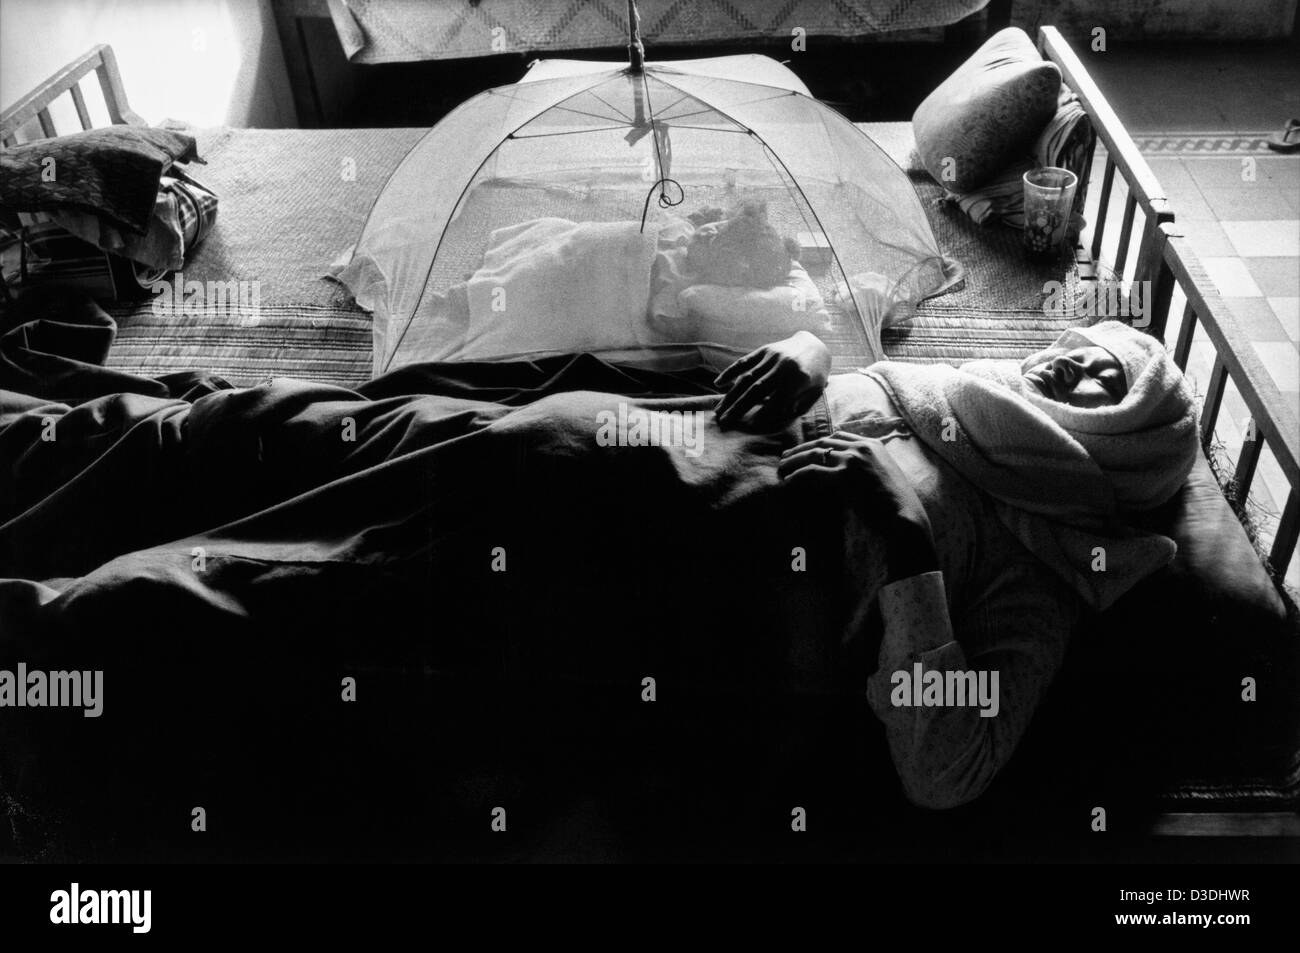 Takeo province, Cambodia: A mother recovers from giving birth while her baby daughter sleeps under a mosquito net, - Stock Image